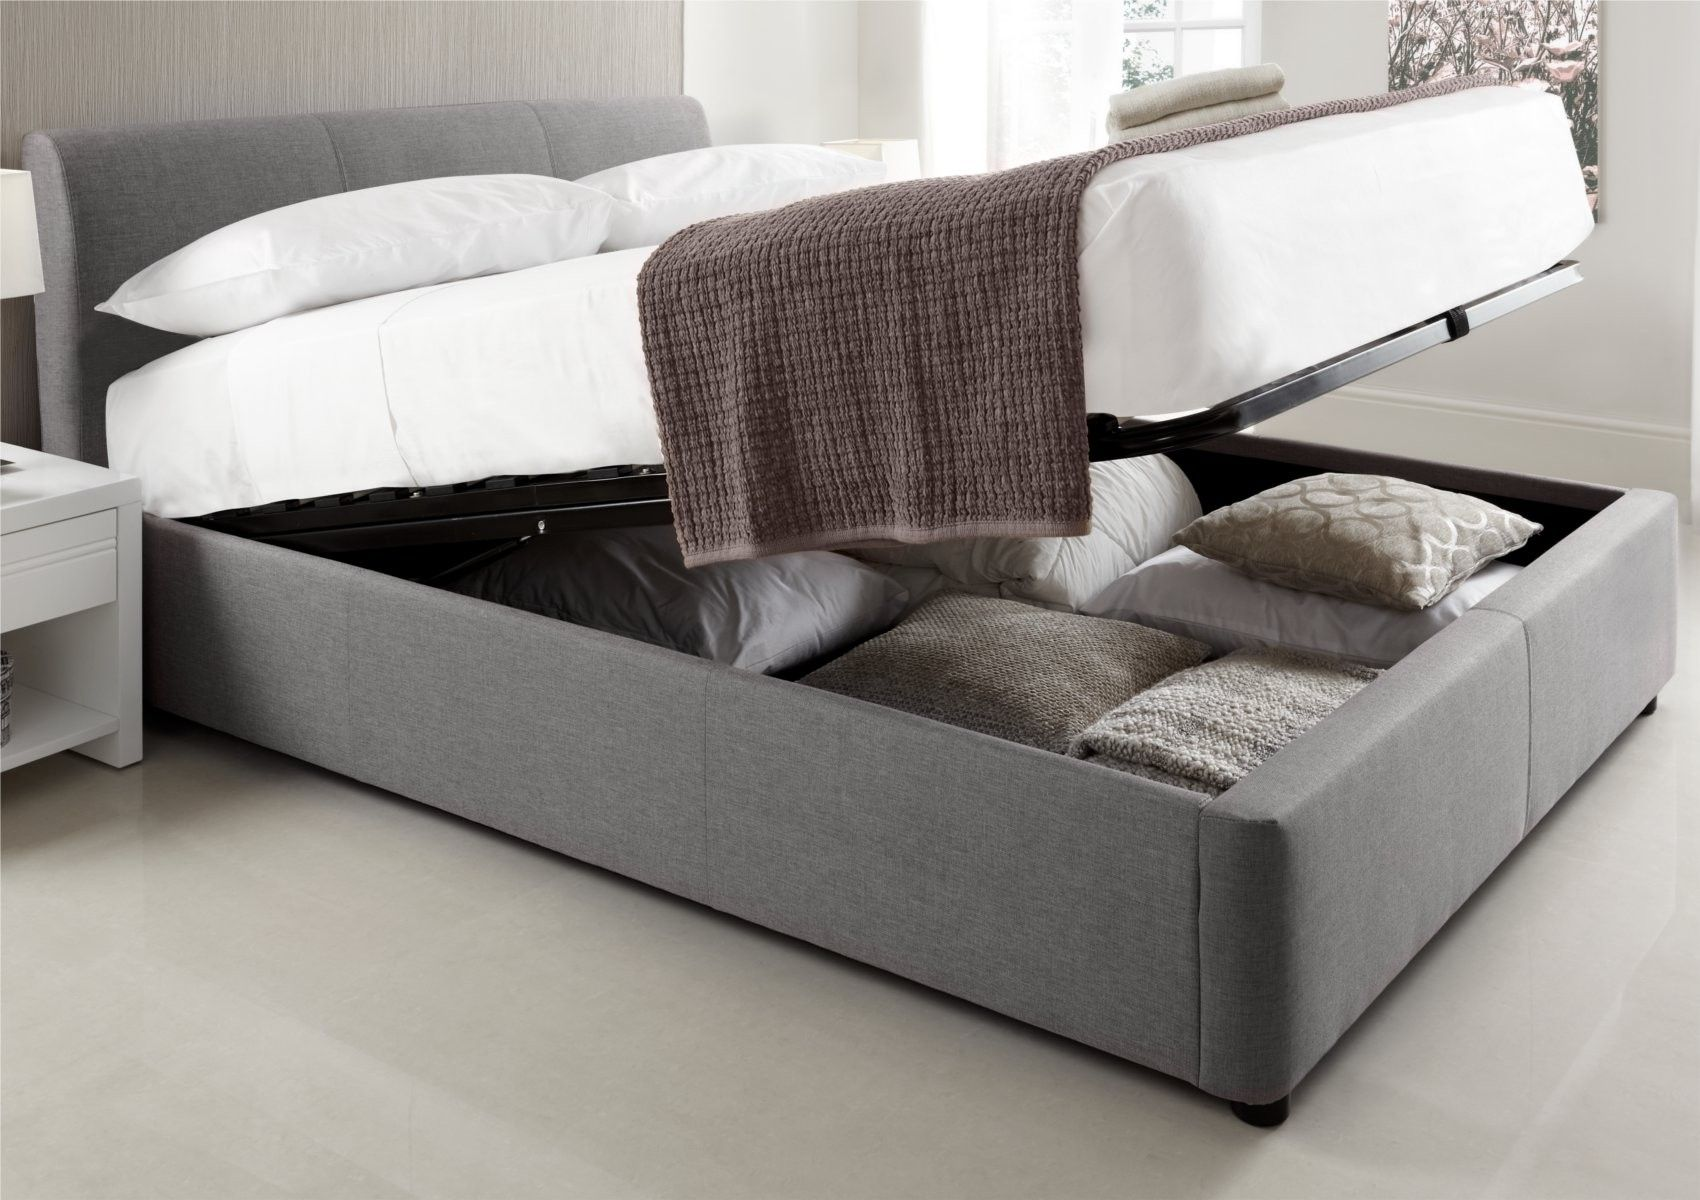 Serenity upholstered ottoman storage bed grey king for King size bunk bed